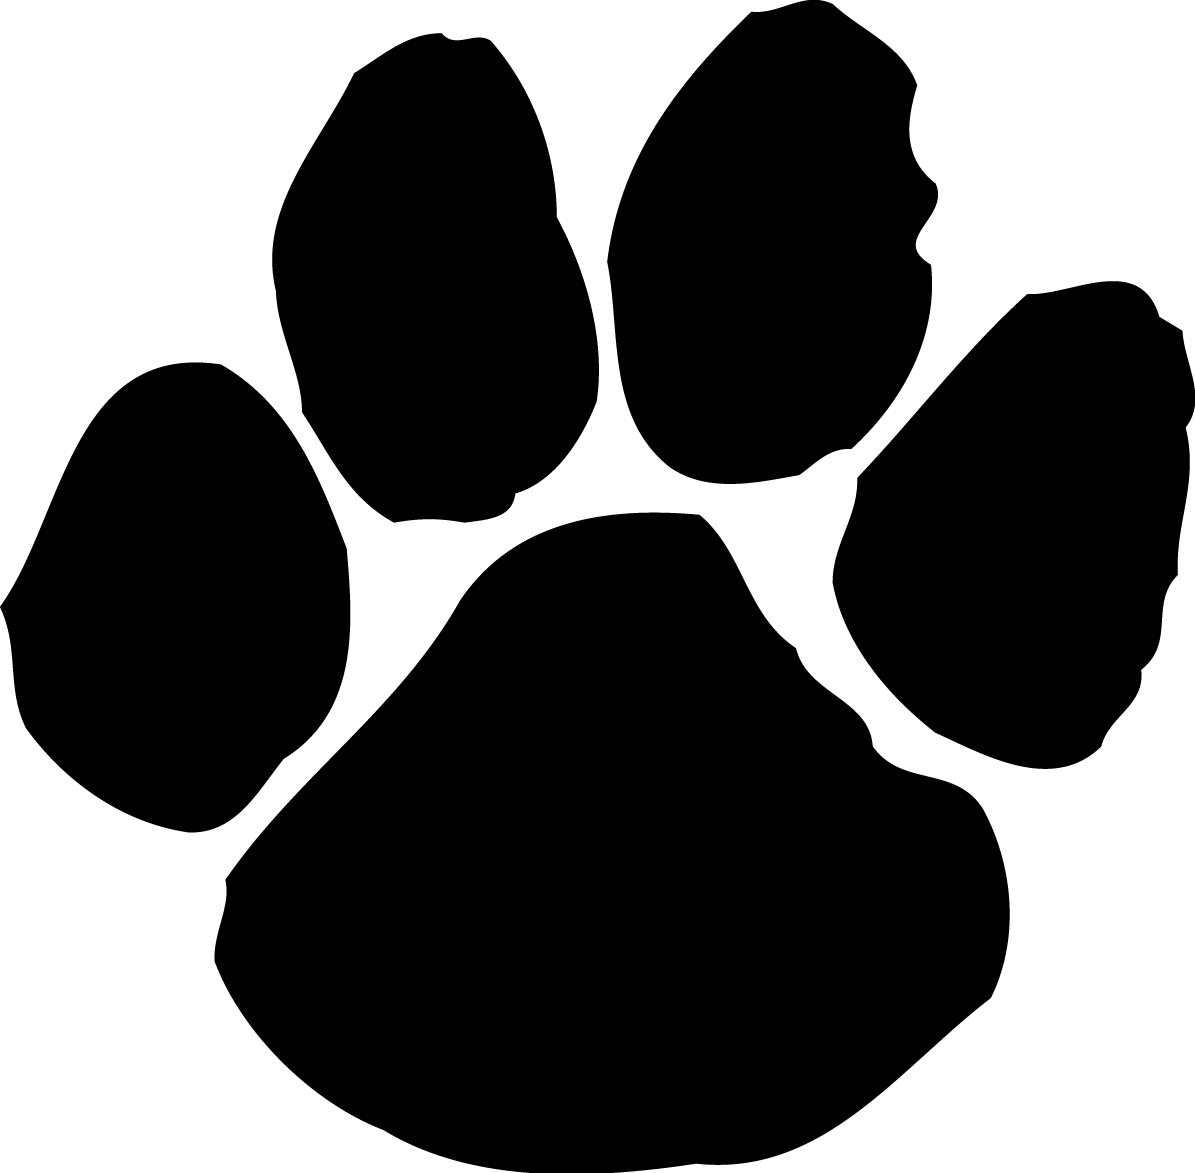 1195x1173 Cat Paw Clipart Of Dog Paw Prints Clipartfox